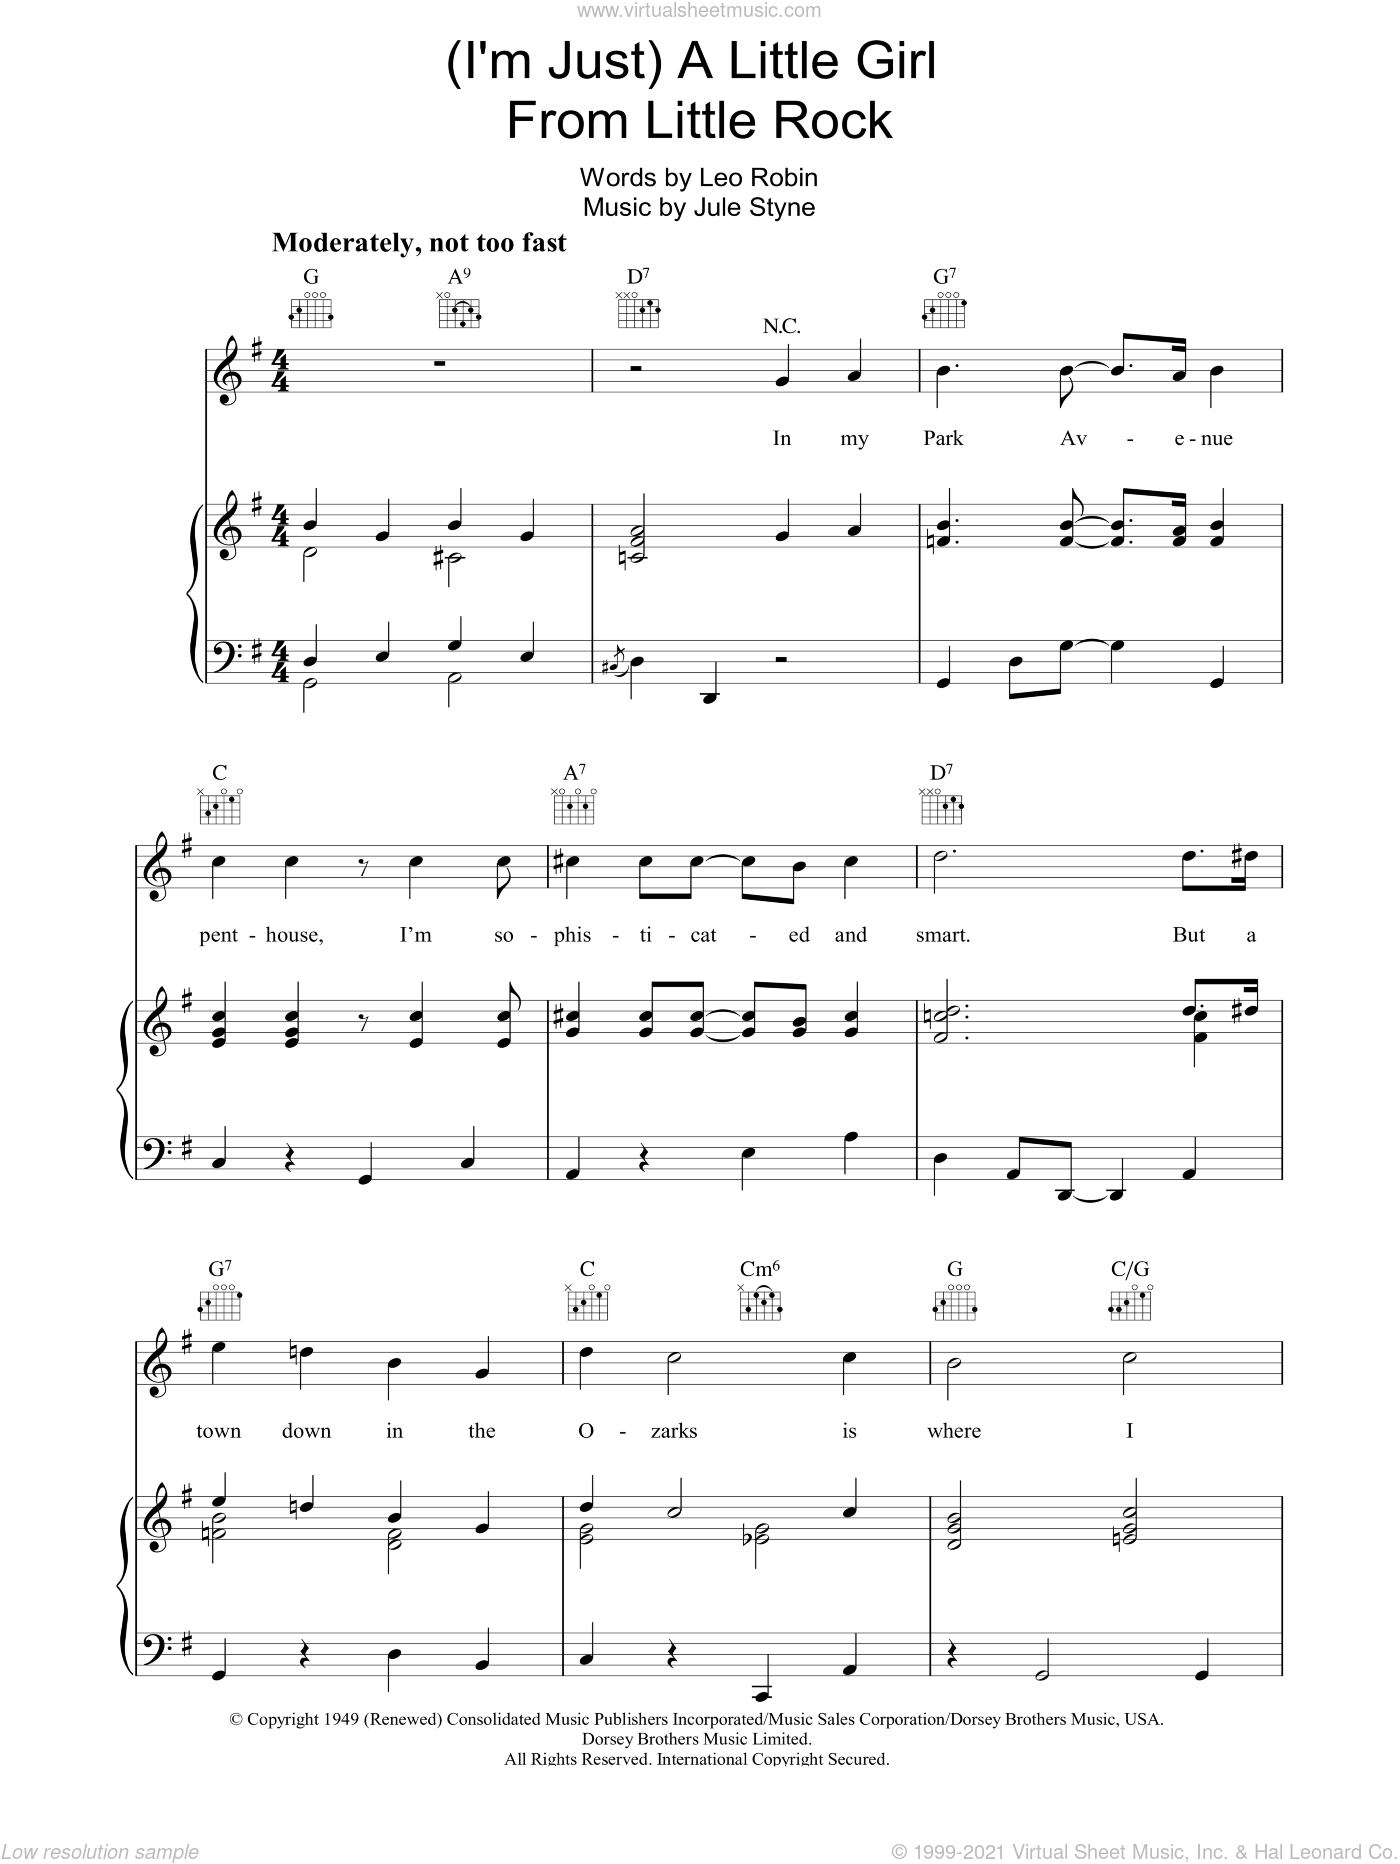 A Little Girl From Little Rock sheet music for voice, piano or guitar by Jule Styne and Leo Robin